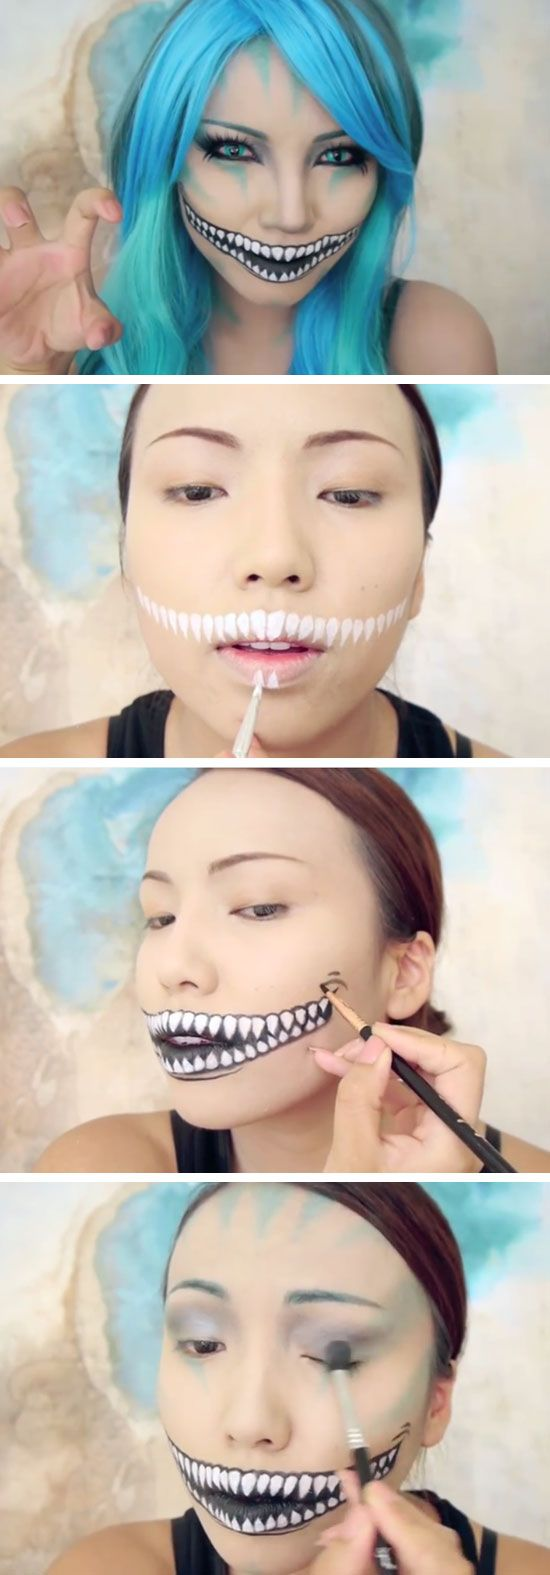 Best ideas for makeup tutorials freaky cheshire cat makeup best ideas for makeup tutorials baditri Image collections